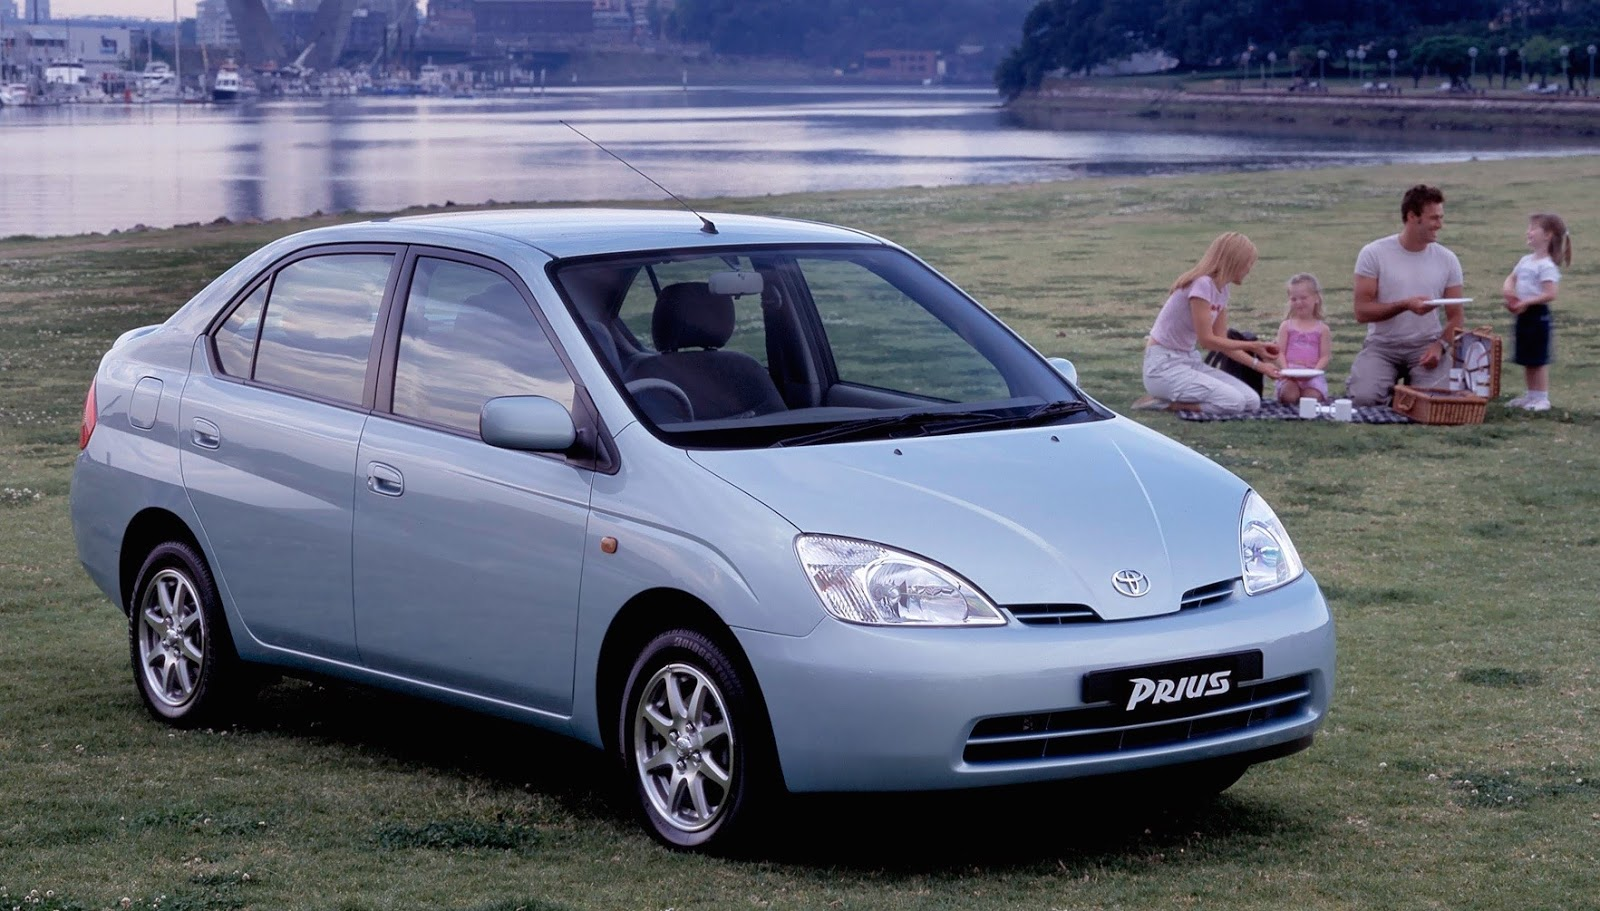 Australian Market Version Prius Shown Here It Has Small Wheels On A Short 100 4 In 2550 Mm Wheelbase Along With Stubby Nose